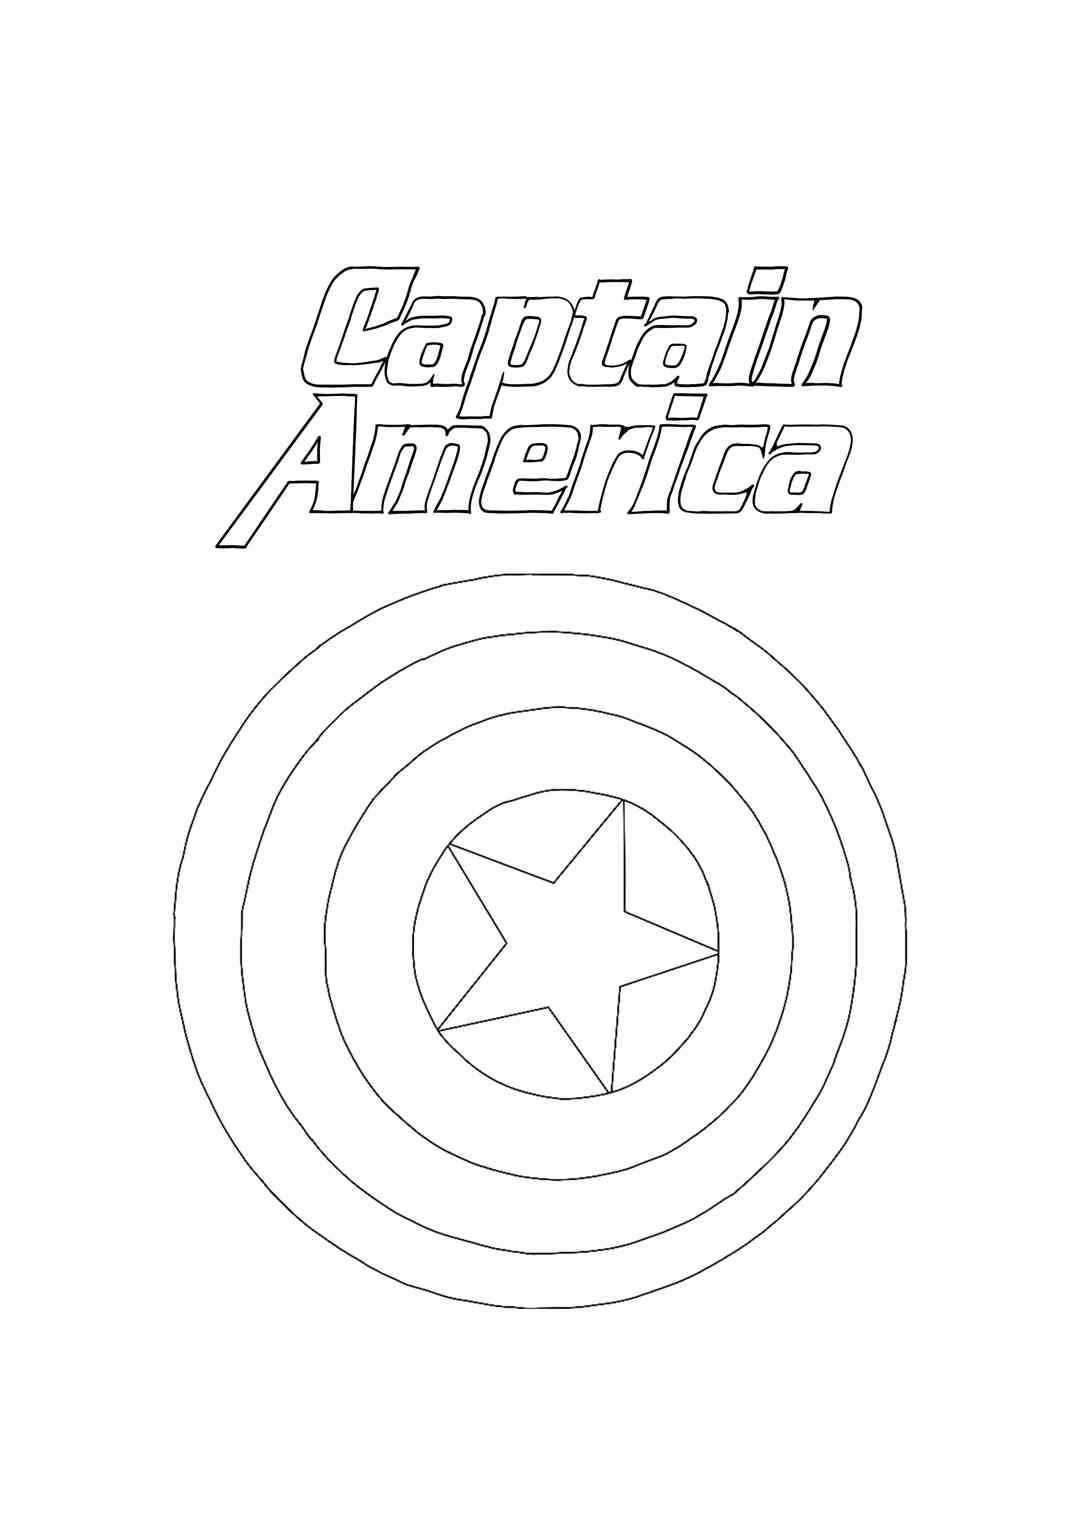 Captain America Shield Coloring Page Captain America Coloring Pages Captain America Shield Coloring Pages